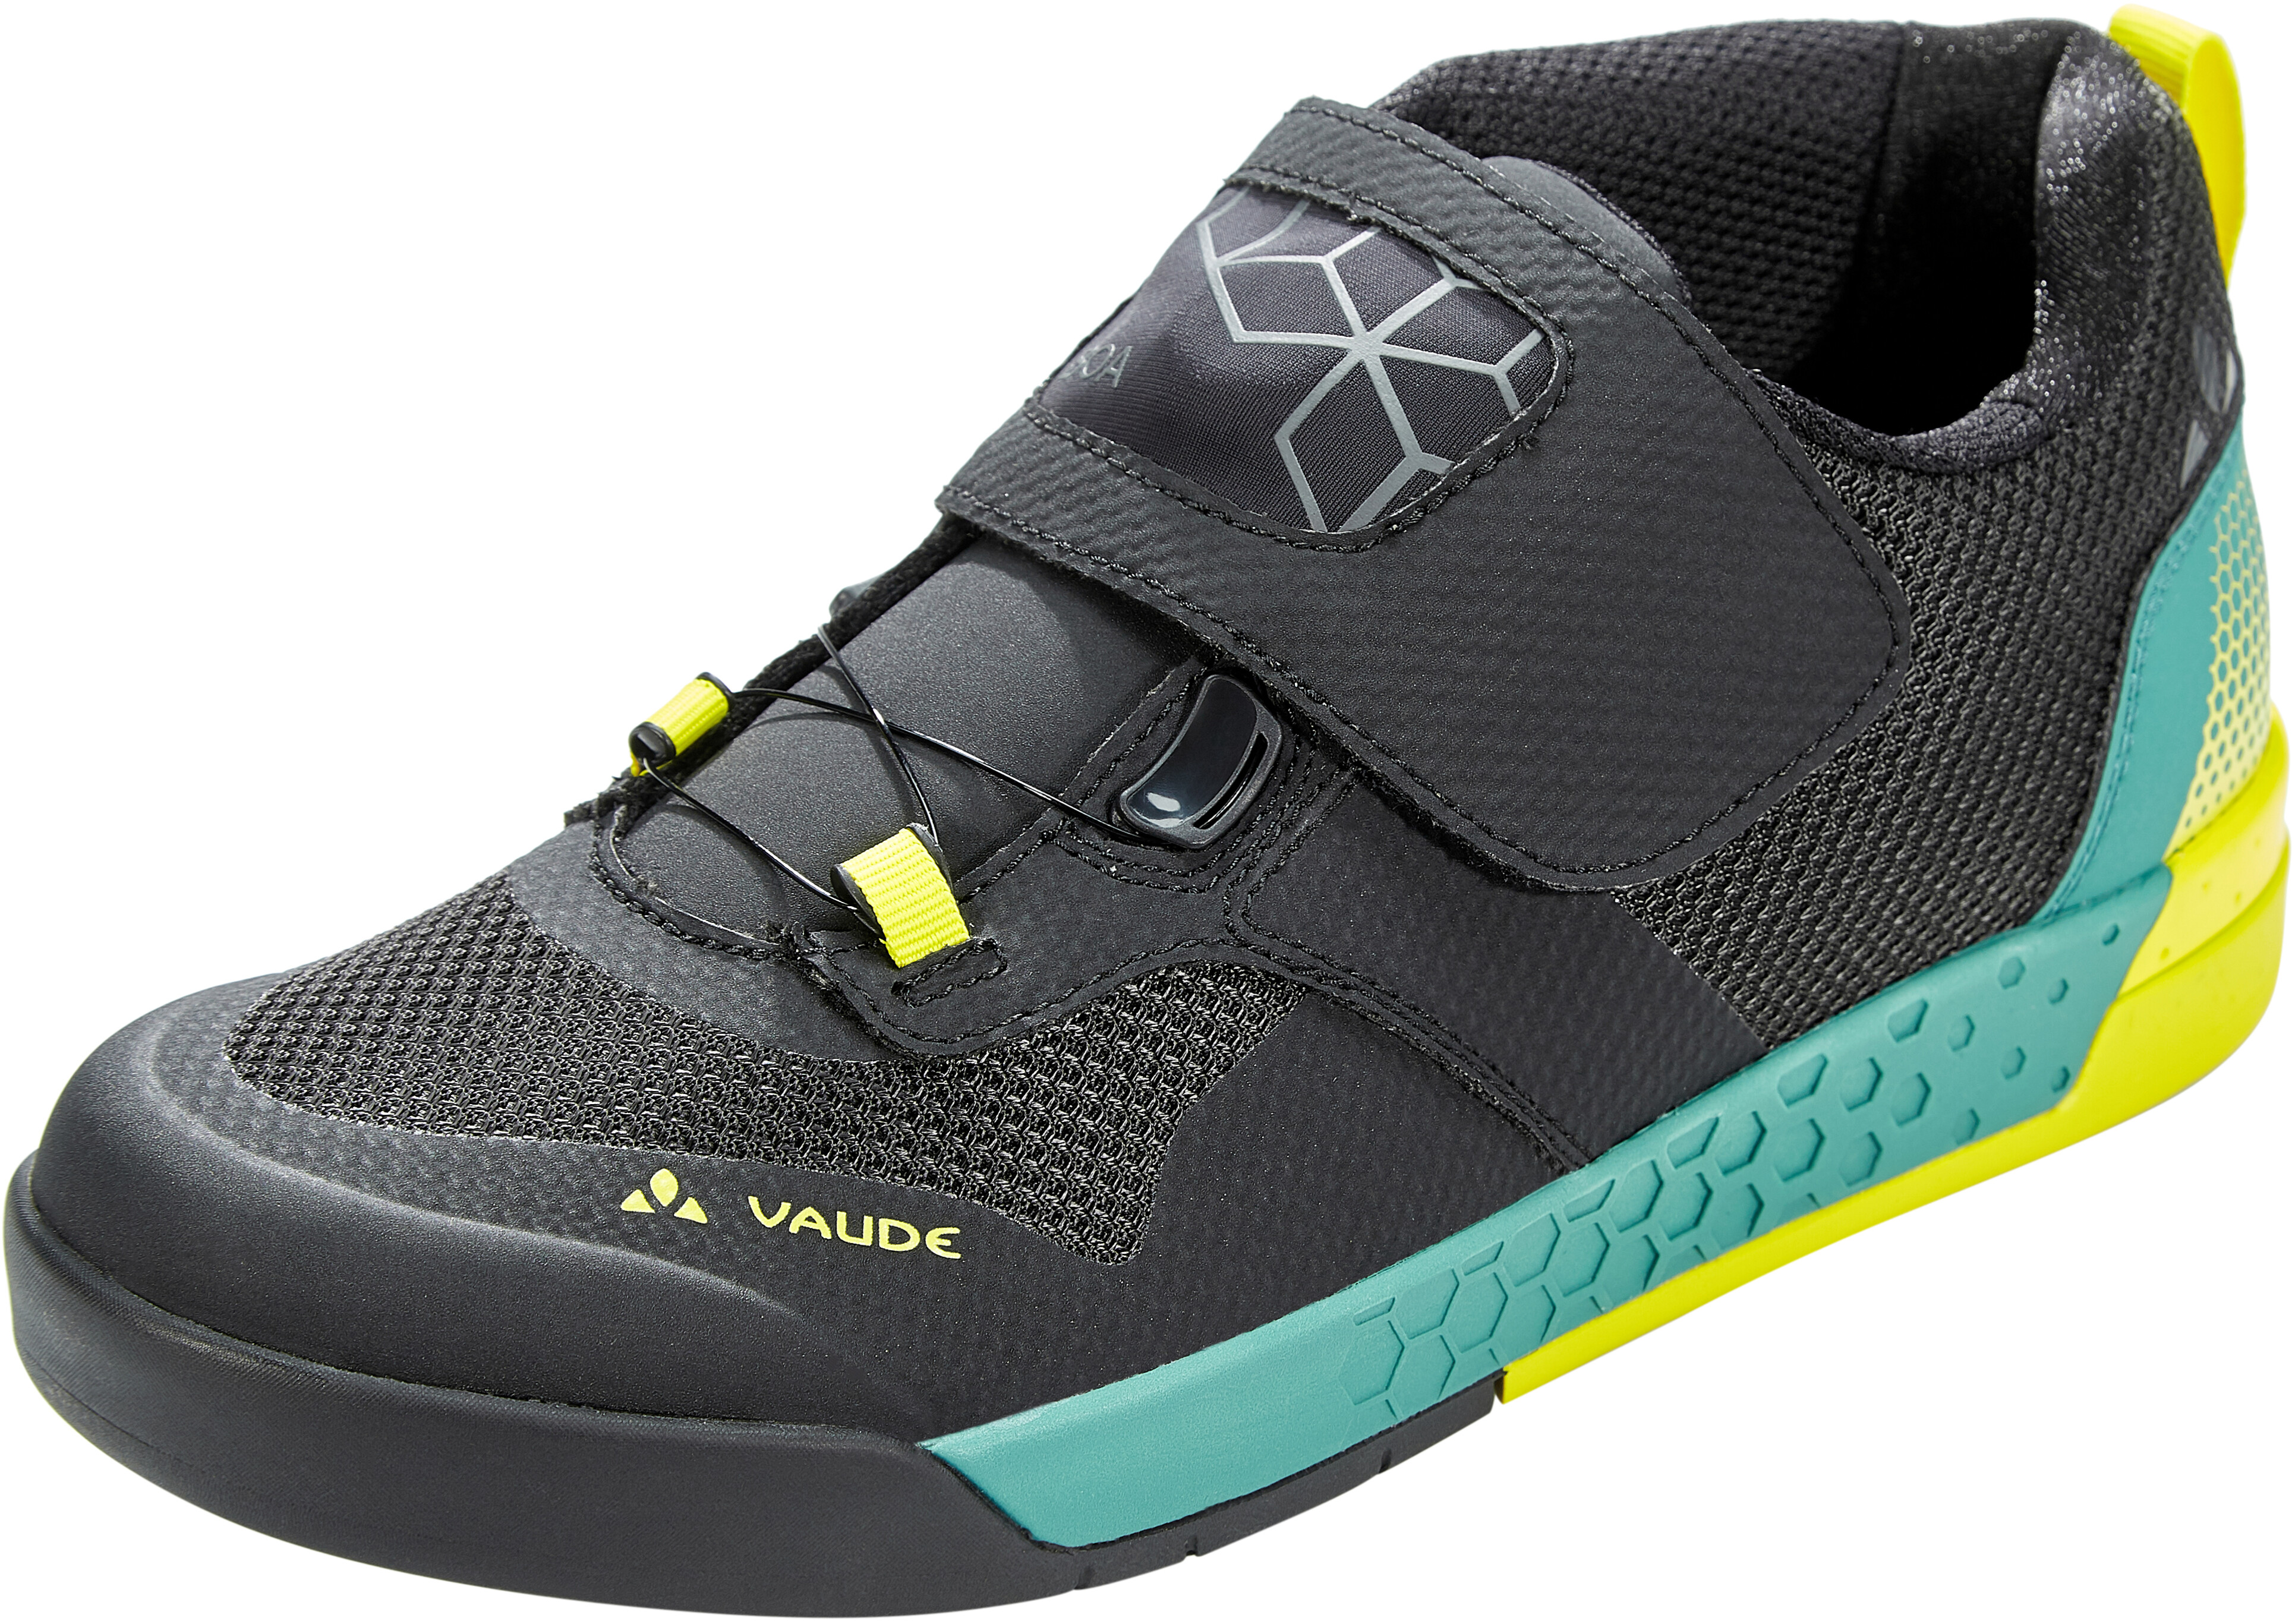 Vaude Am Moab Tech Shoes Canary At Bikester Co Uk